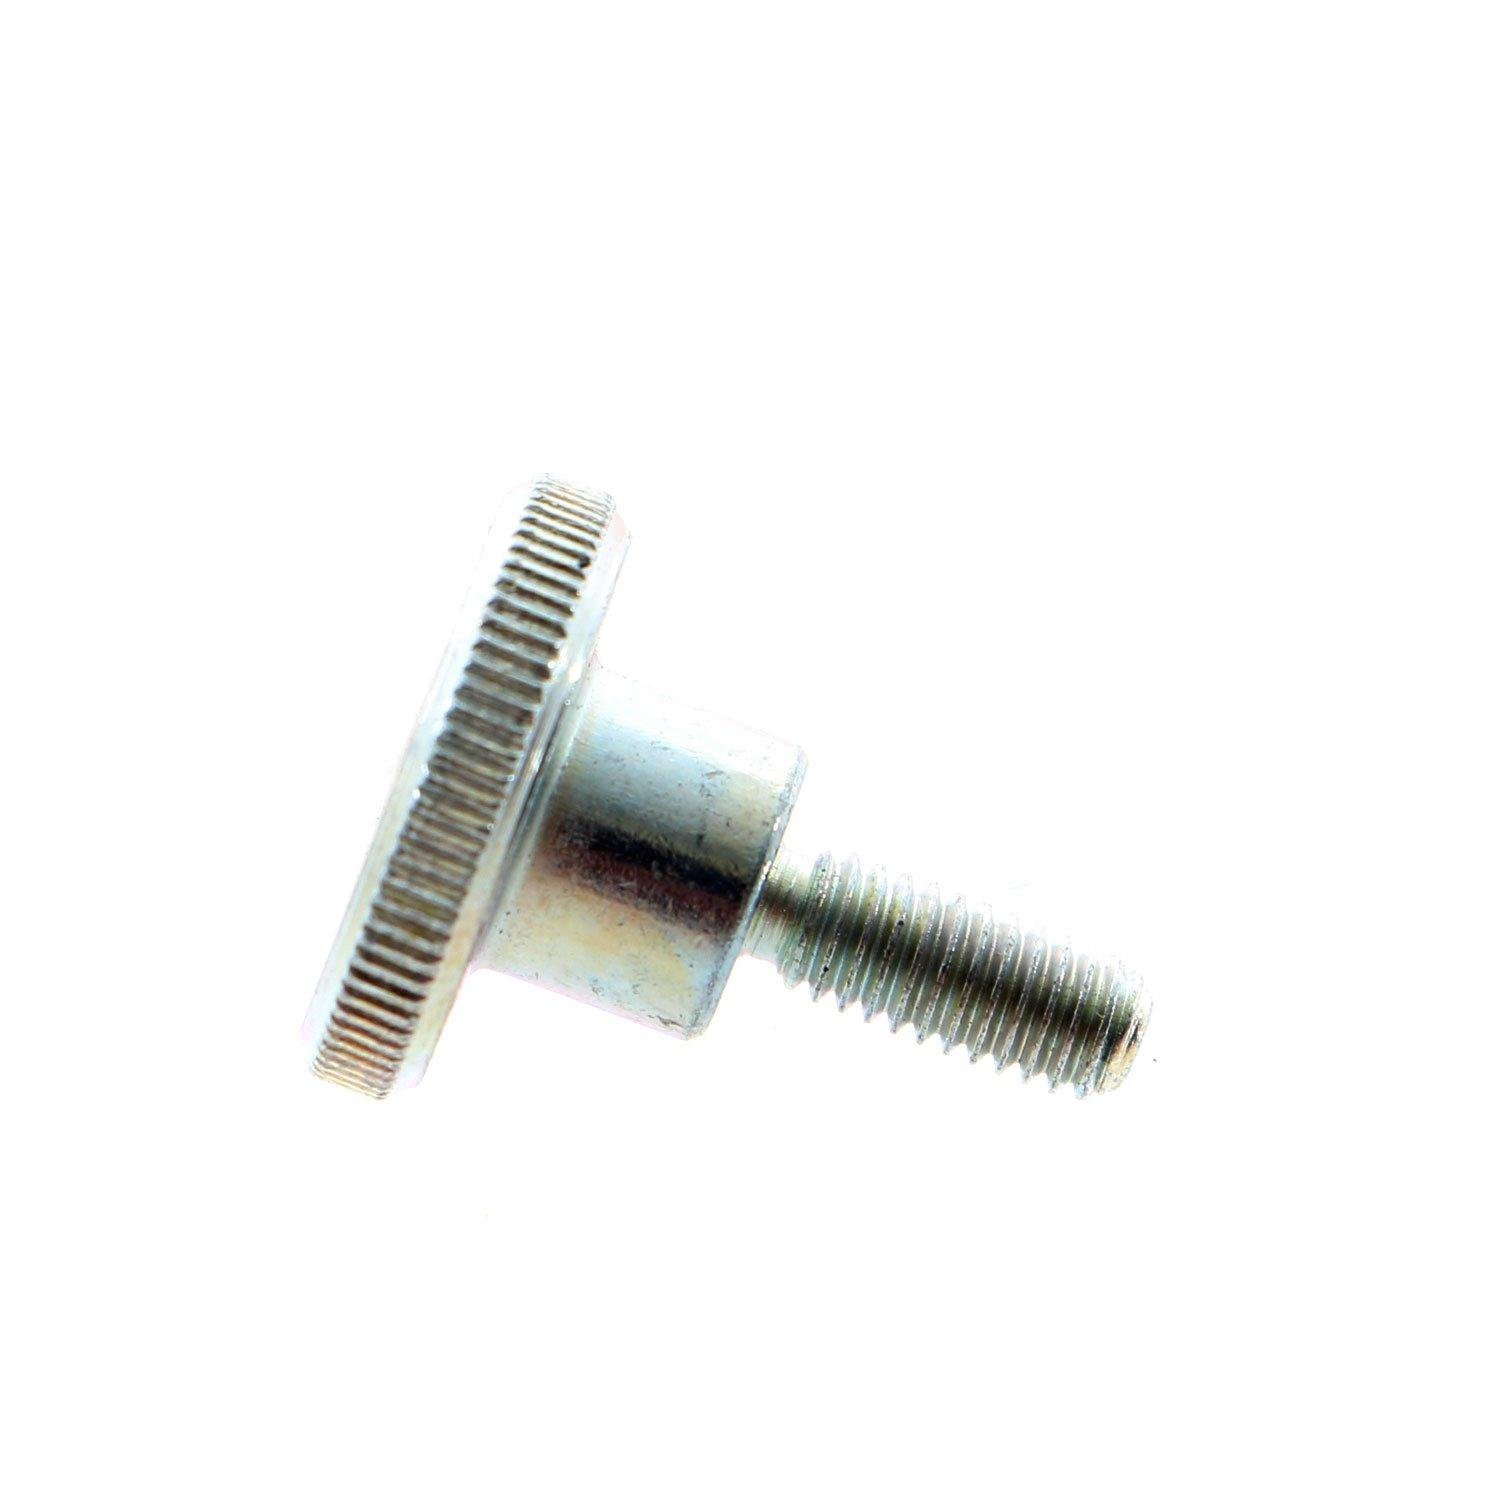 FRANKE COFFEE KNURLED HEAS SCREW FLAT